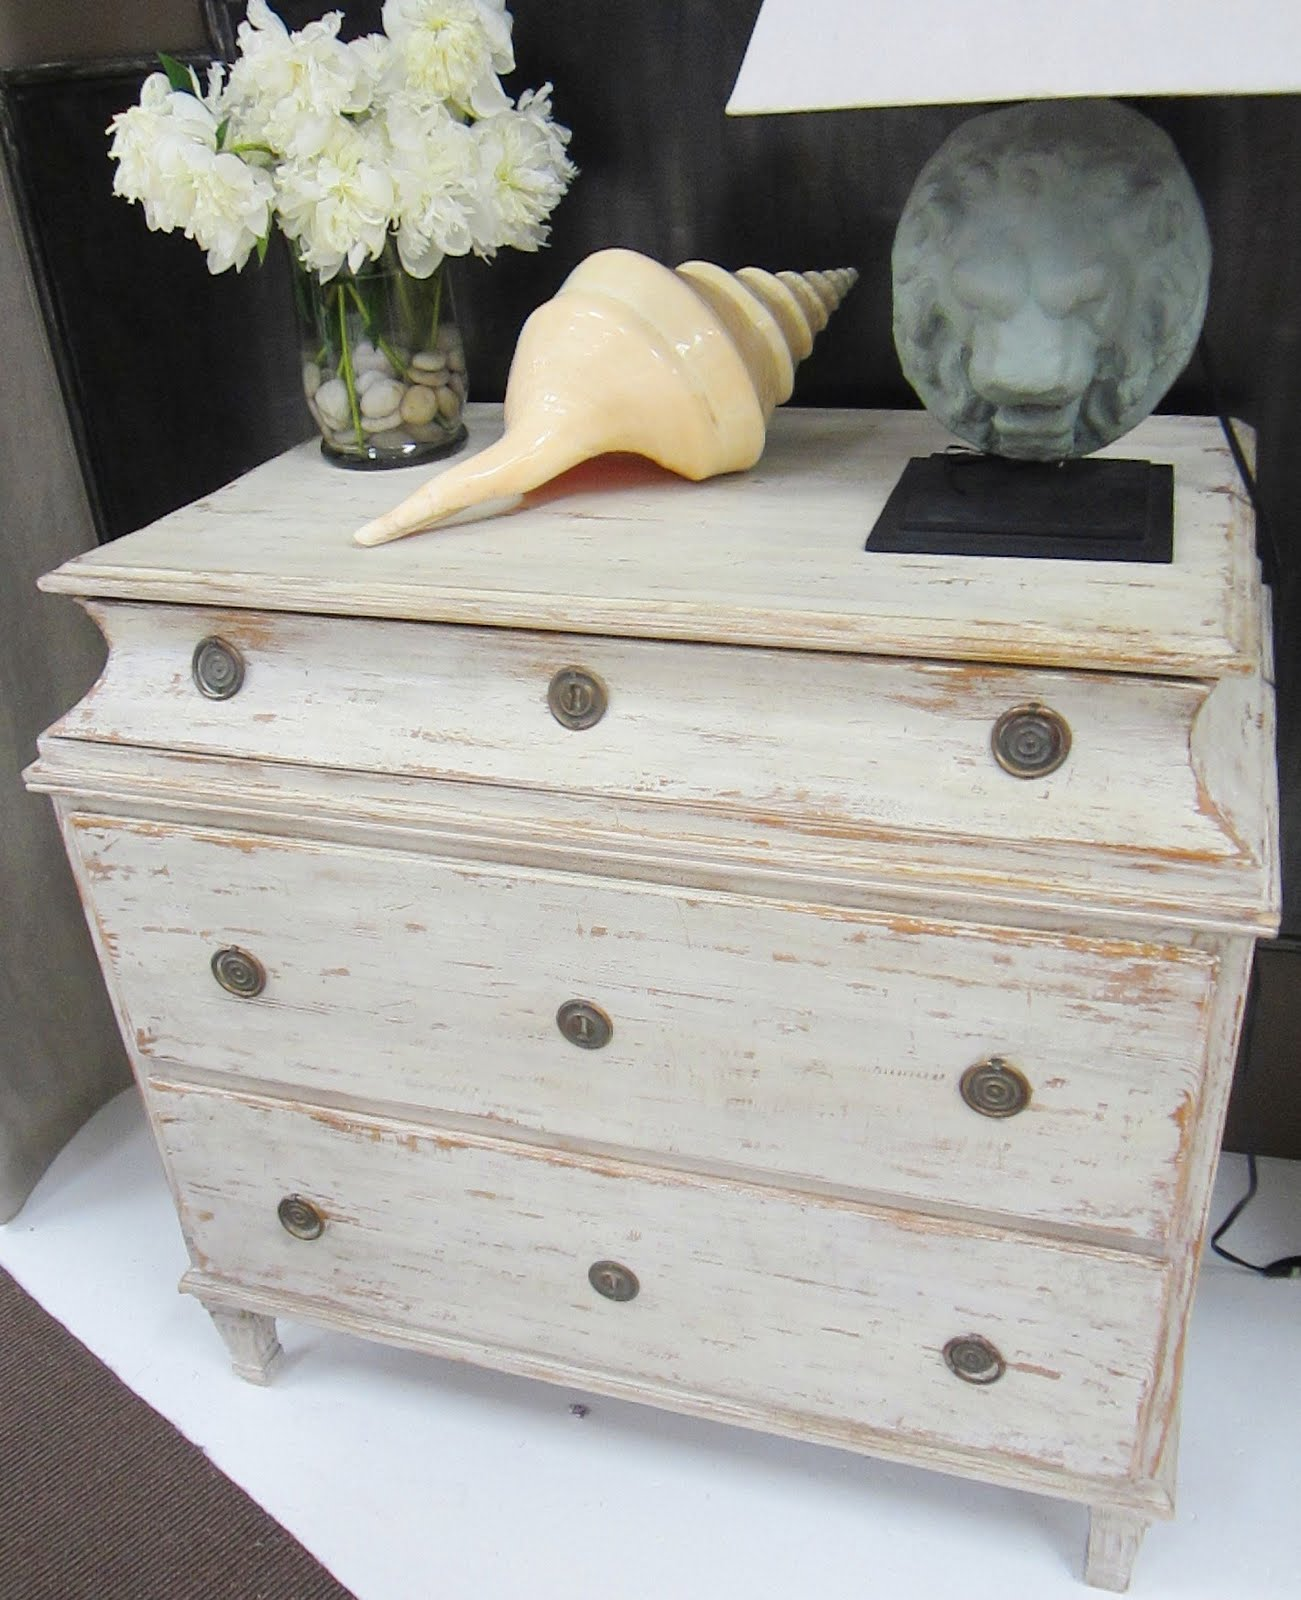 Swedish 3 Drawer Chest By Tara Shaw Maison With A Large Sea Shell, Flower  Arragement